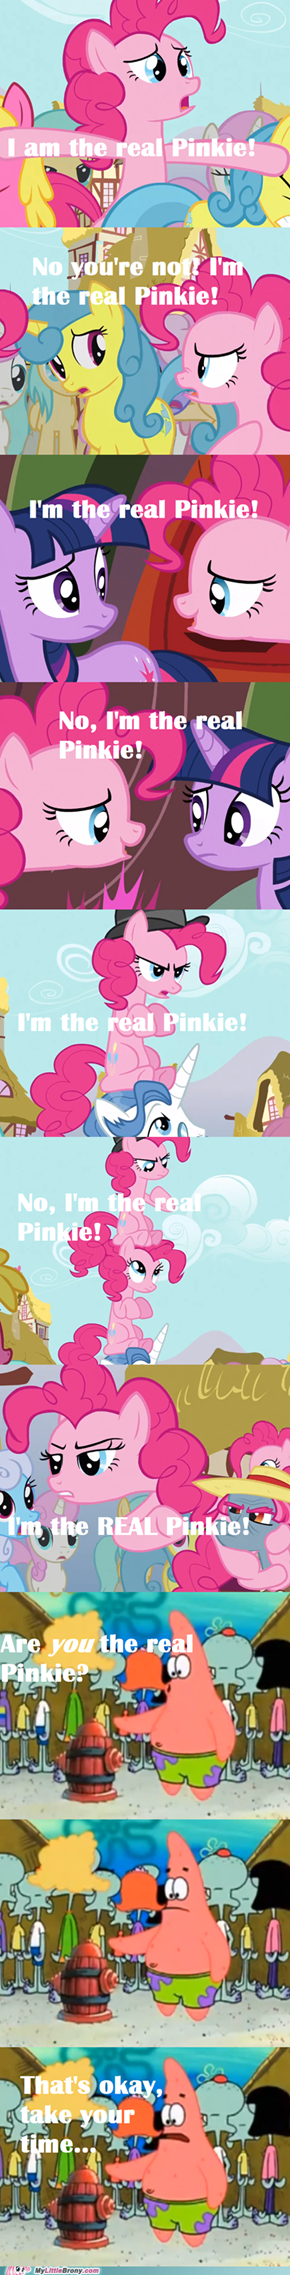 The Real Pinkie